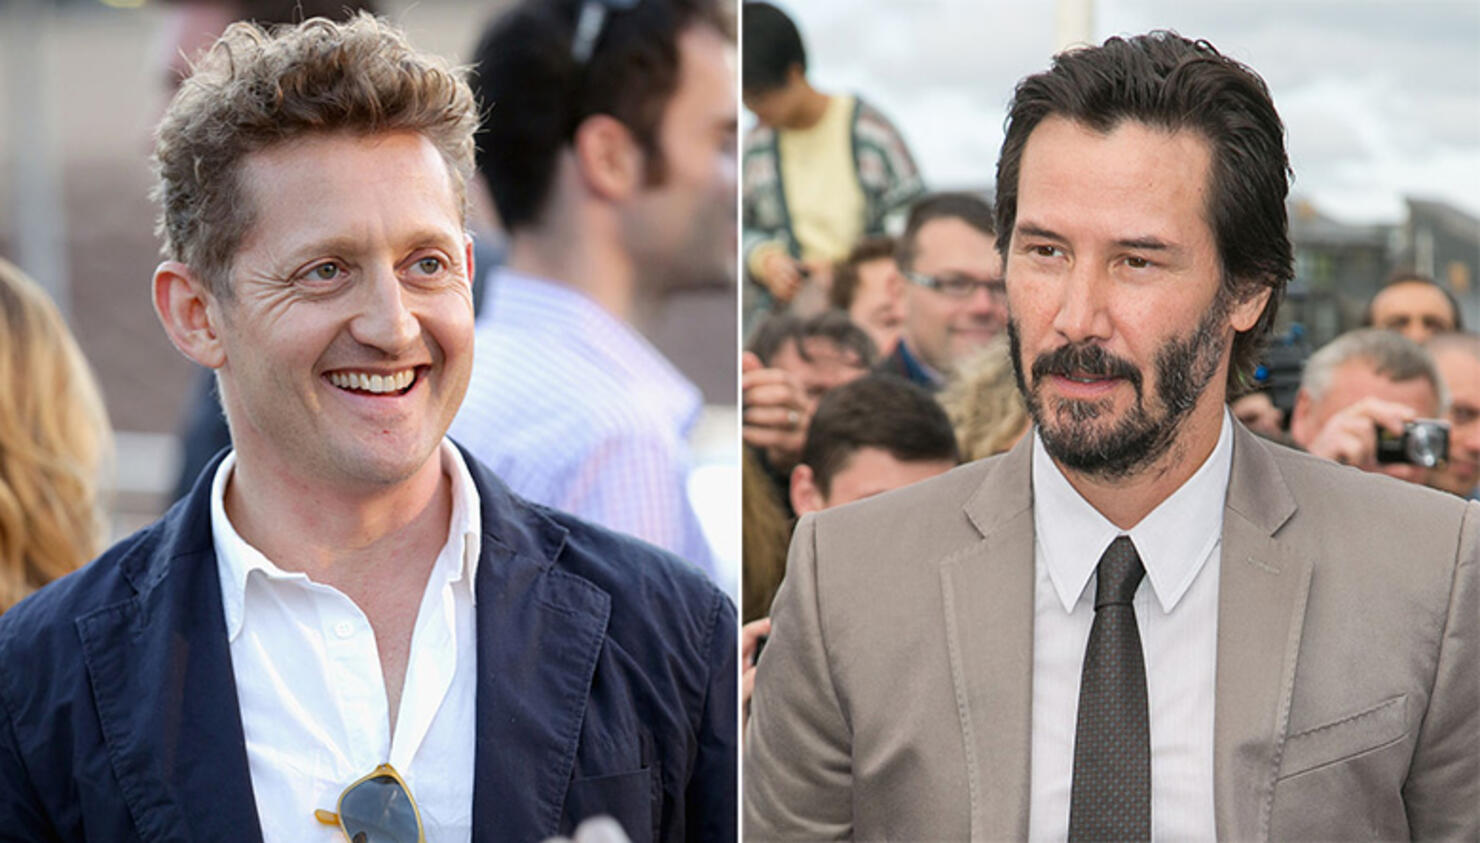 'Bill & Ted' Has Been Greenlit